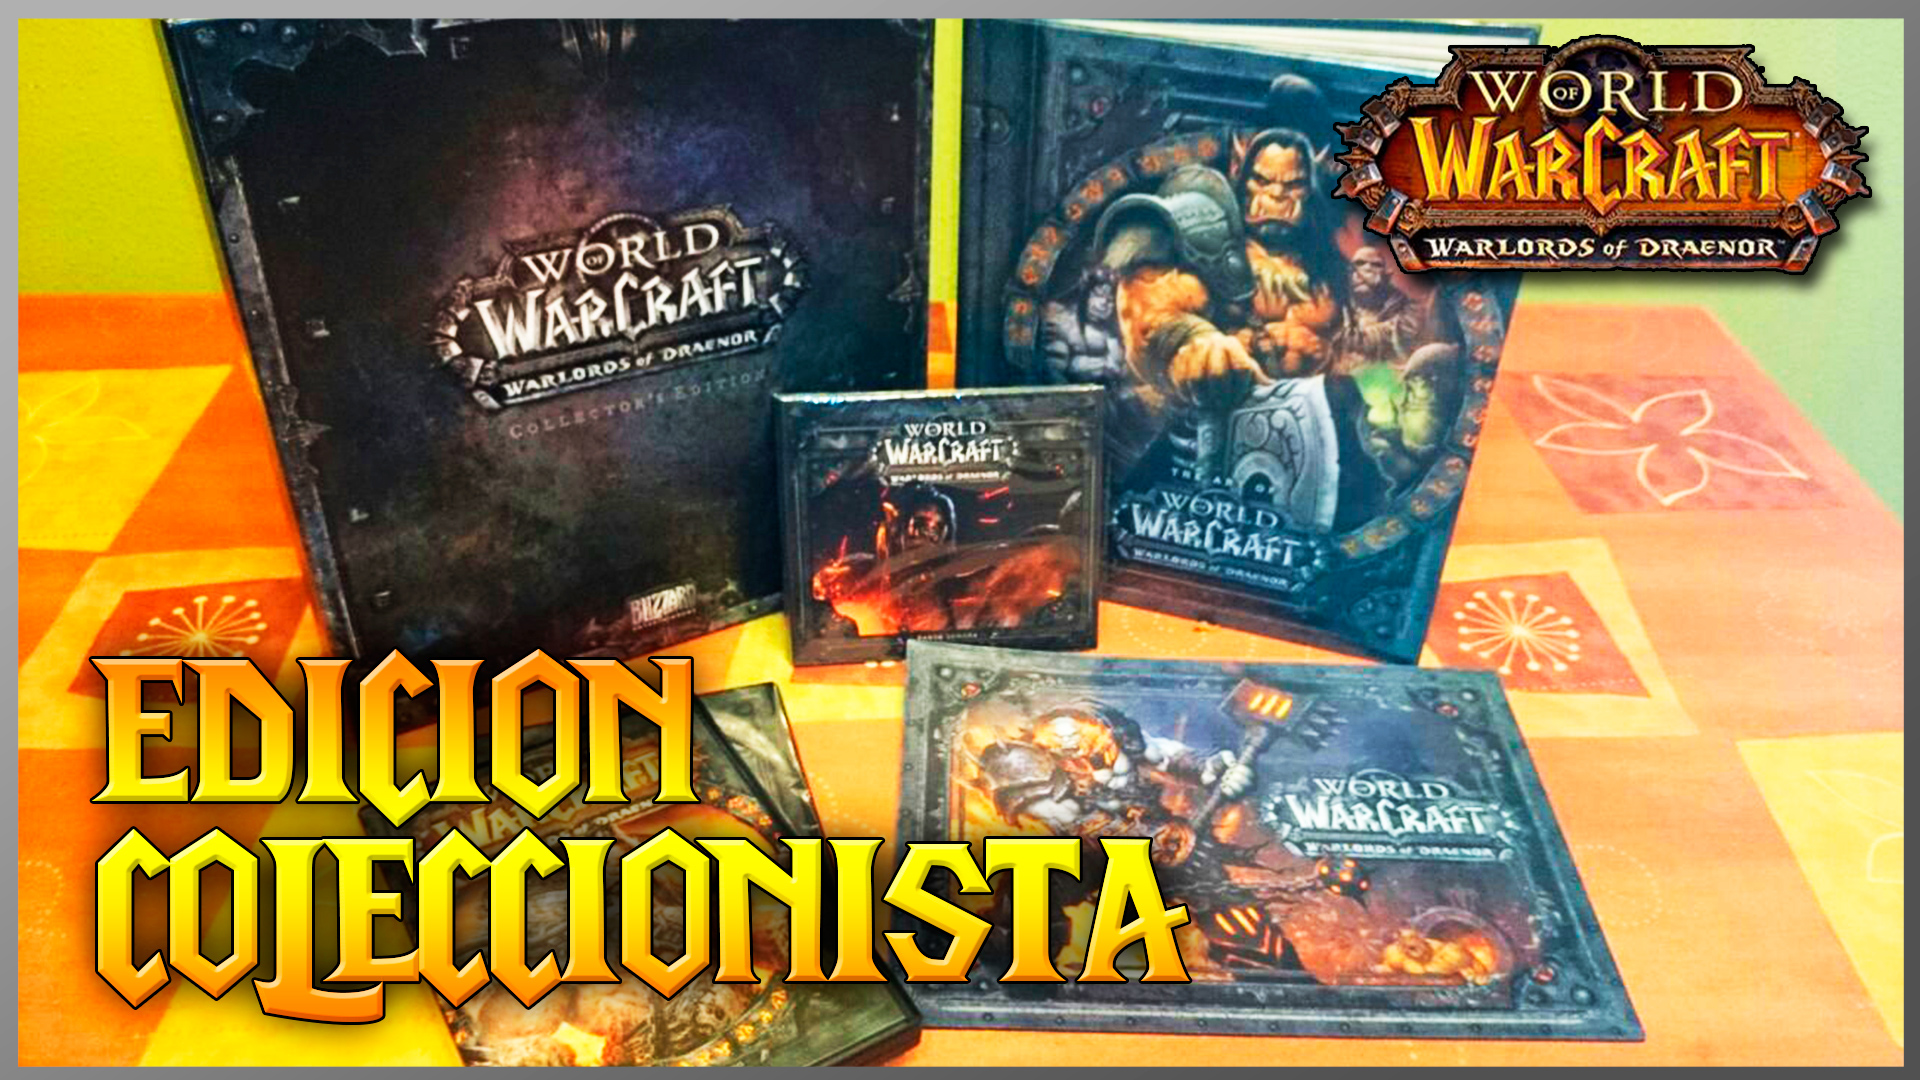 Libros Wow Unboxing World Of Warcraft Warlords Of Draenor Edición